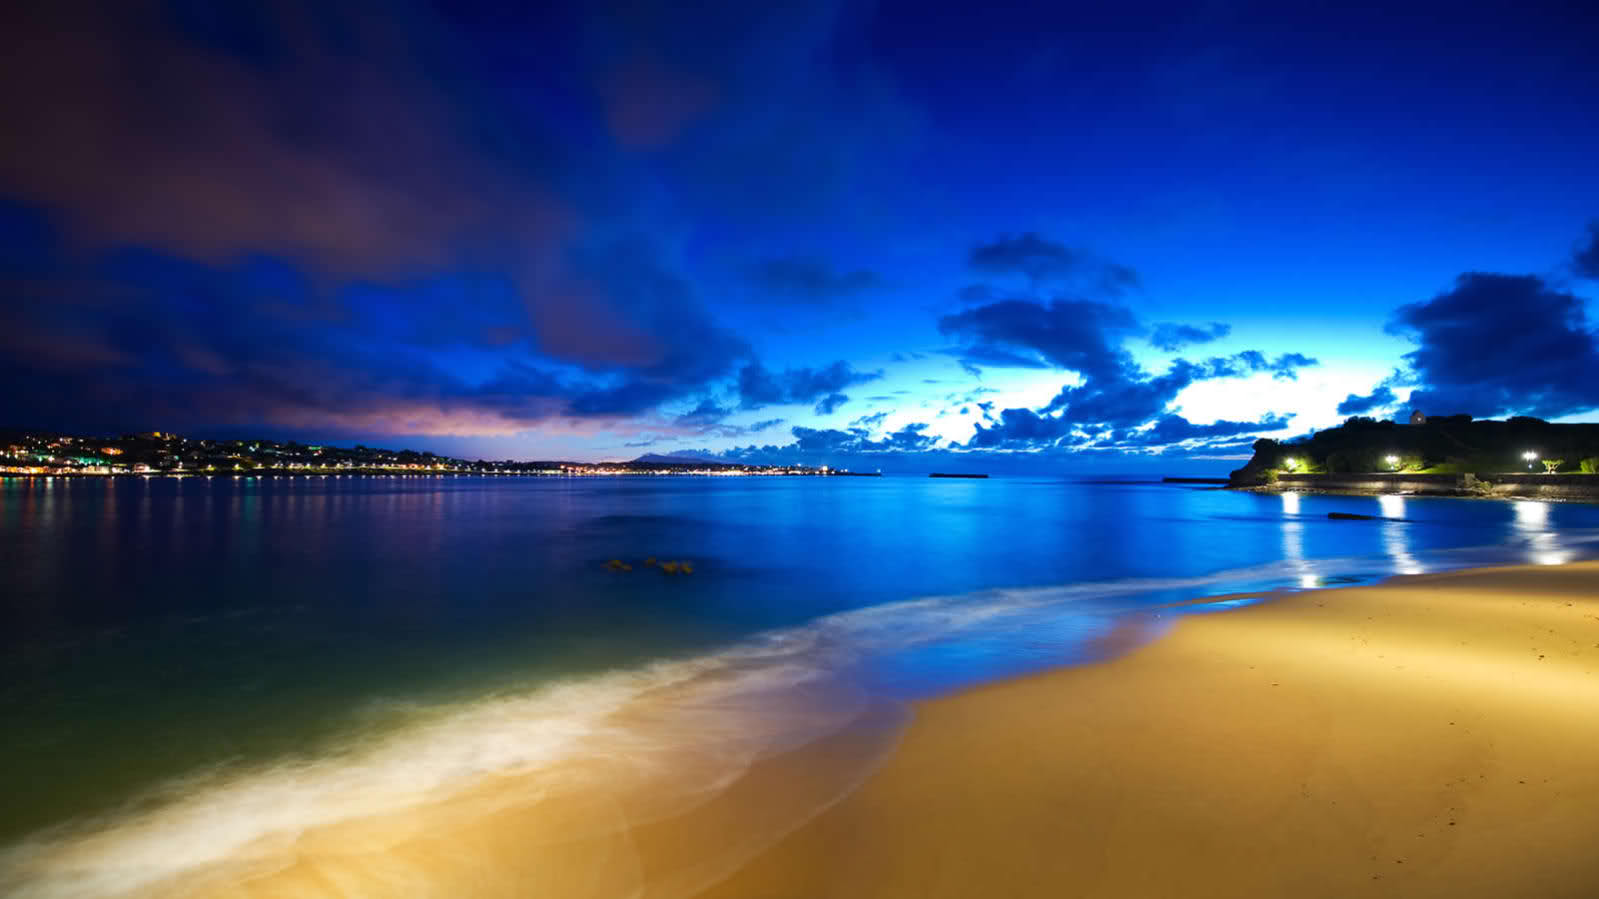 Beach Sunset Cool Twitter Background 1599x899